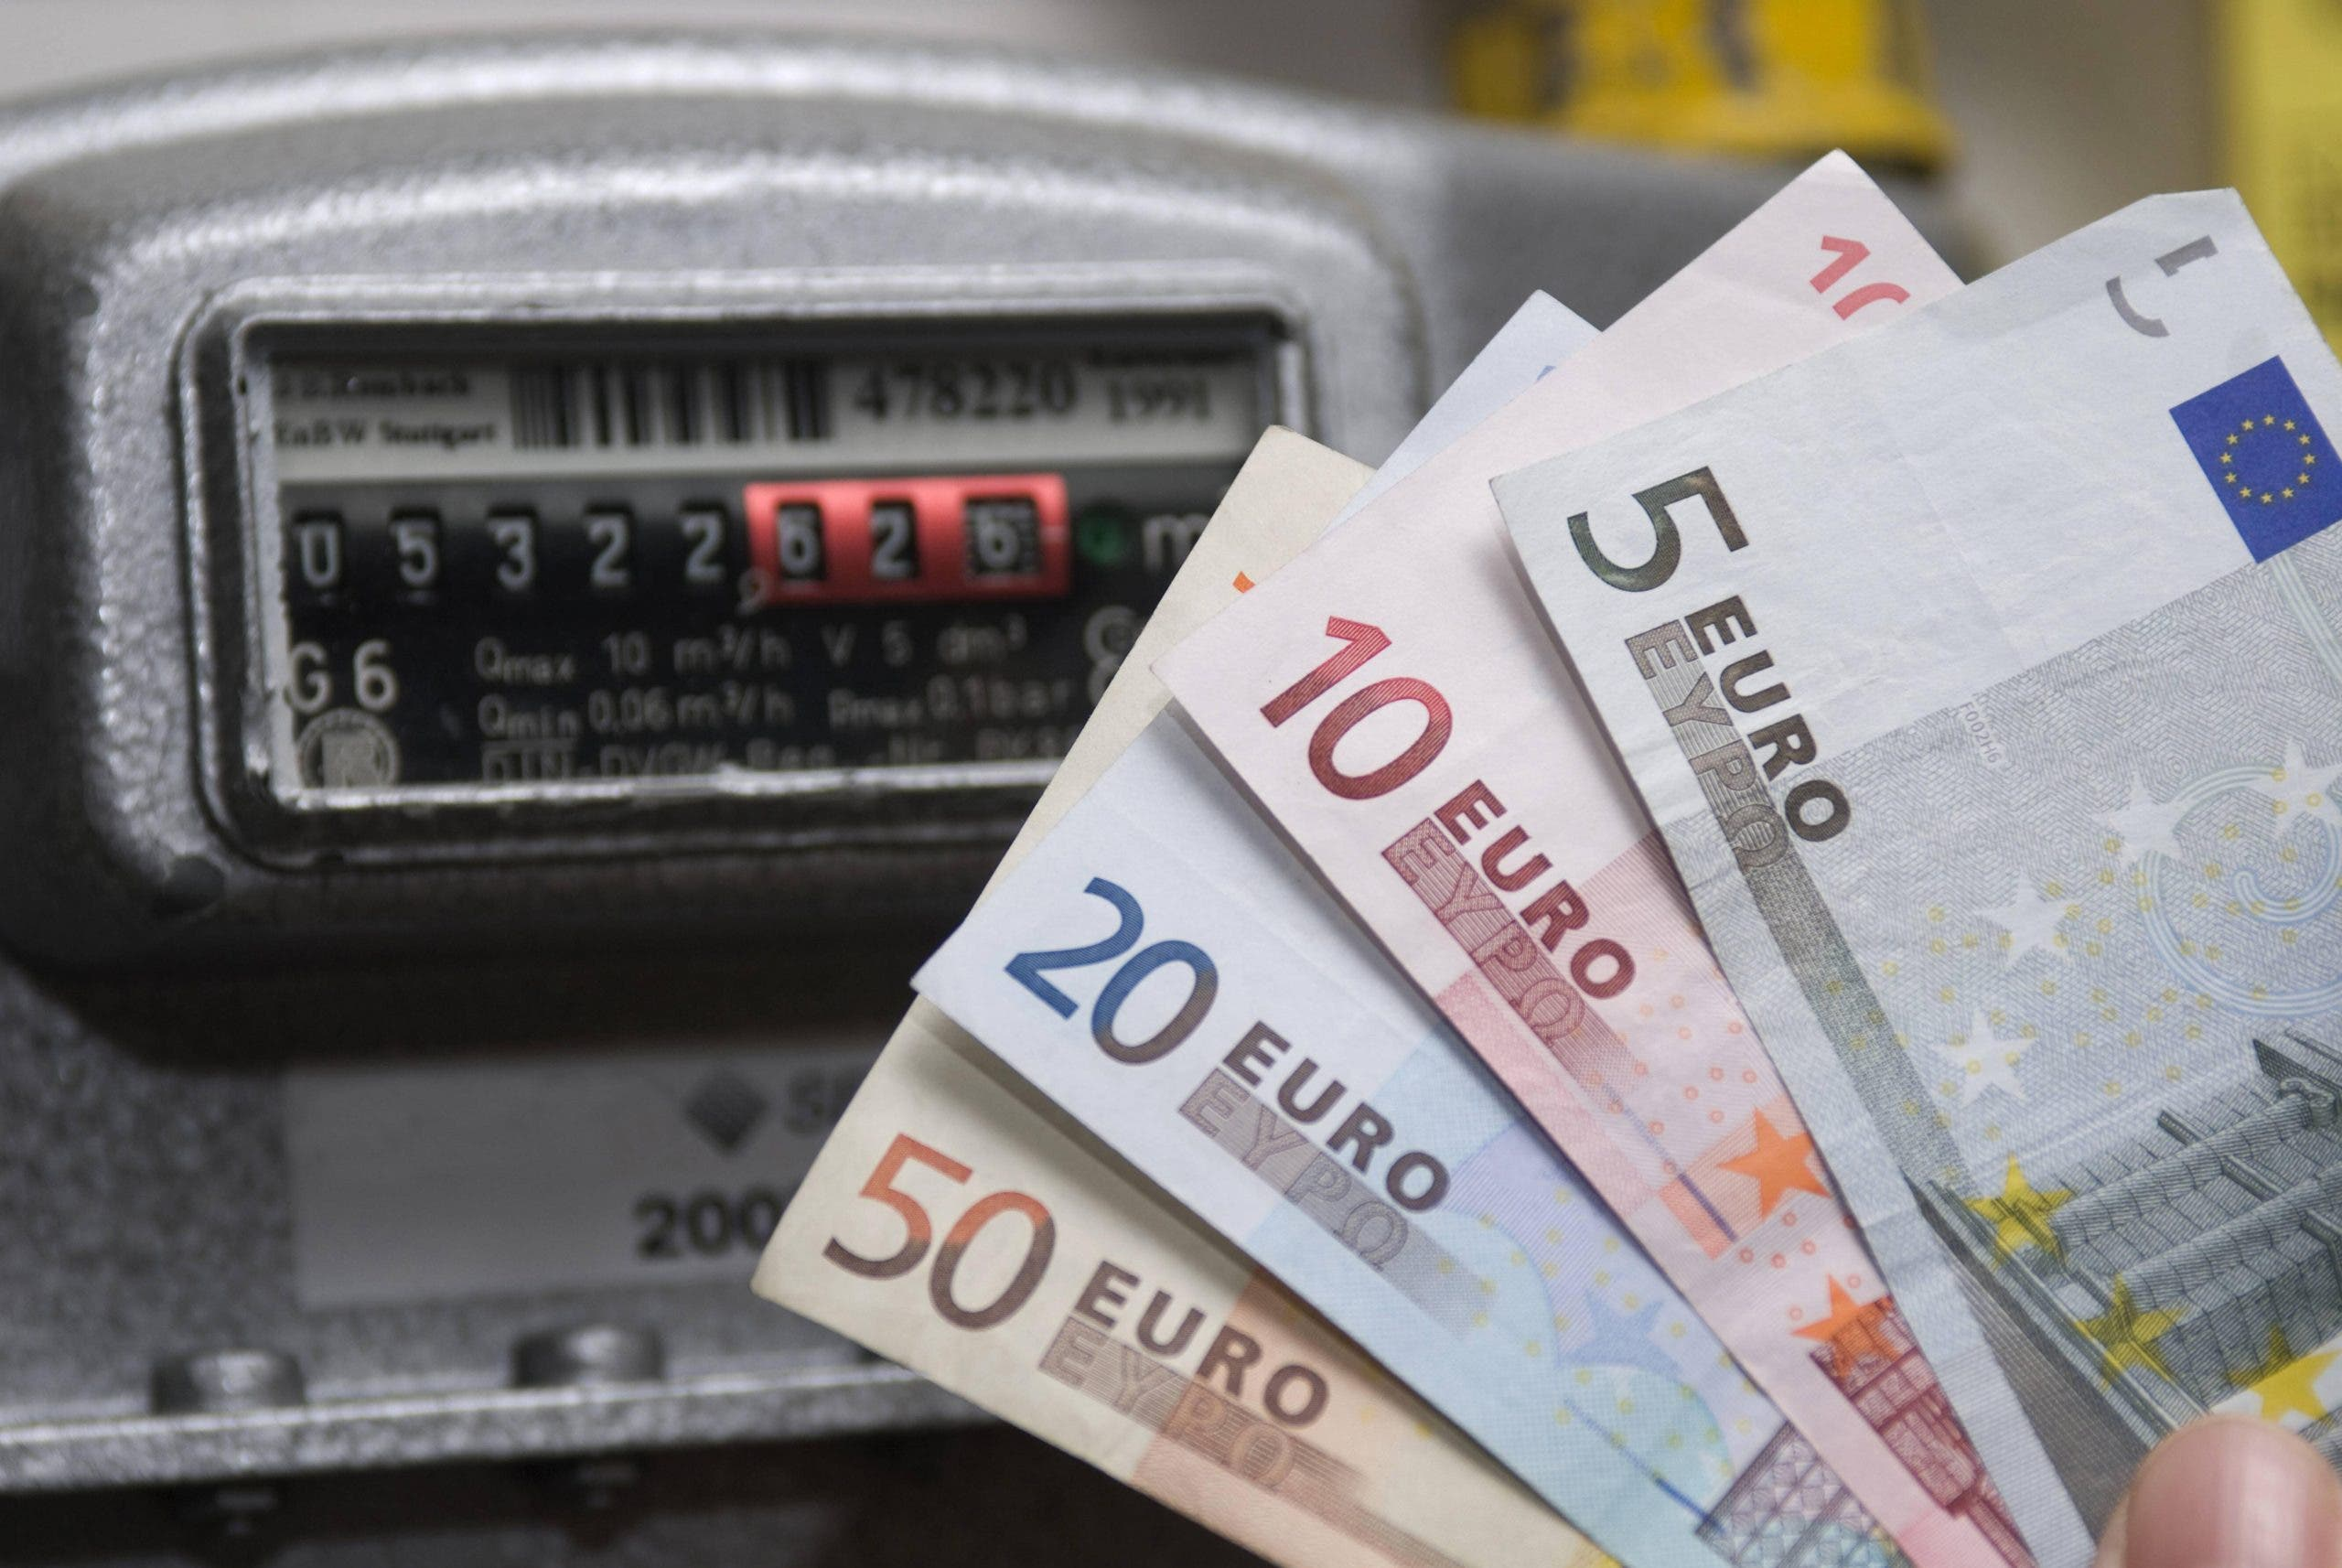 Electricity price hikes take inflation in Spain to 13-year-high as government criticises the EU